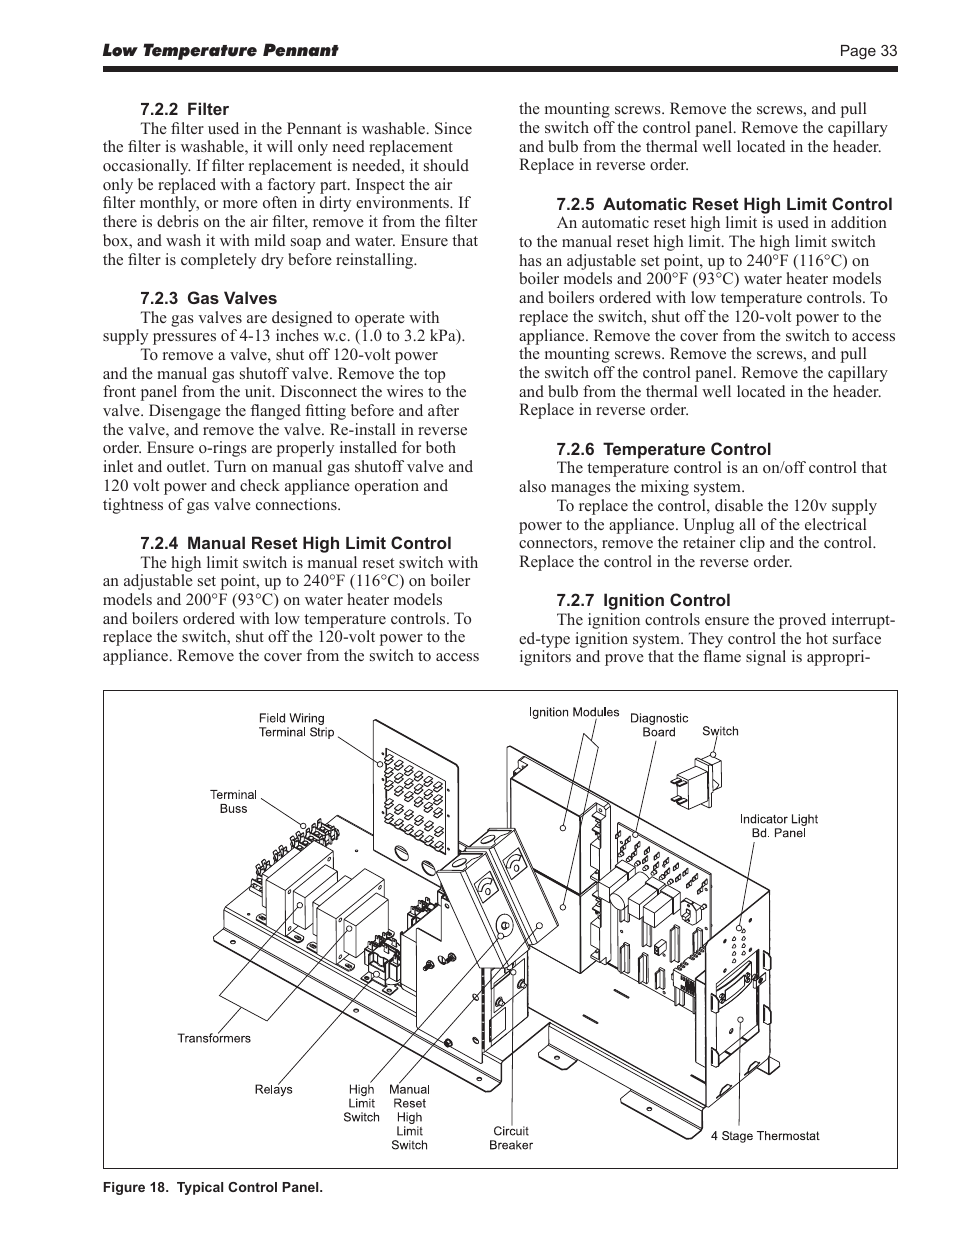 hight resolution of laars pennant pncv install and operating manual user manual page 33 44 also for pennant pnch install and operating manual